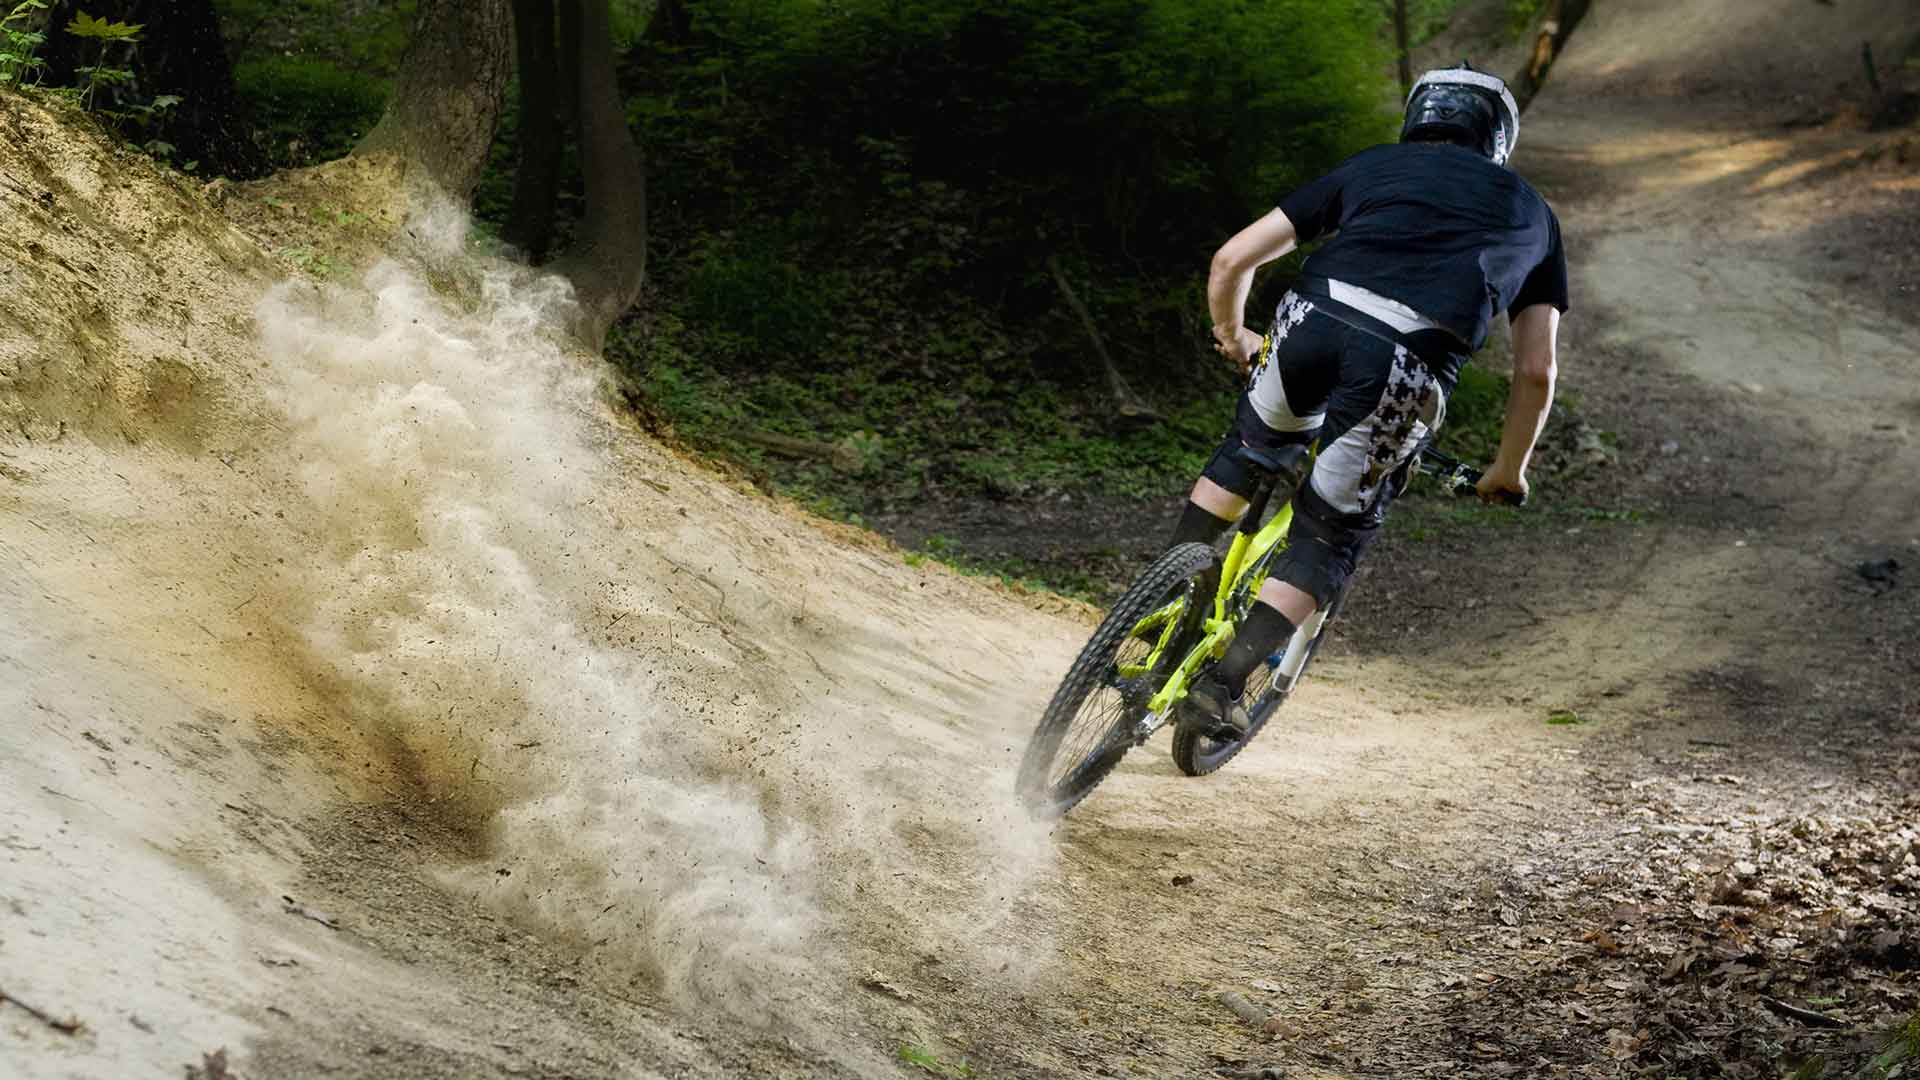 Downhill on Lake Como: pure adrenaline on two wheels!